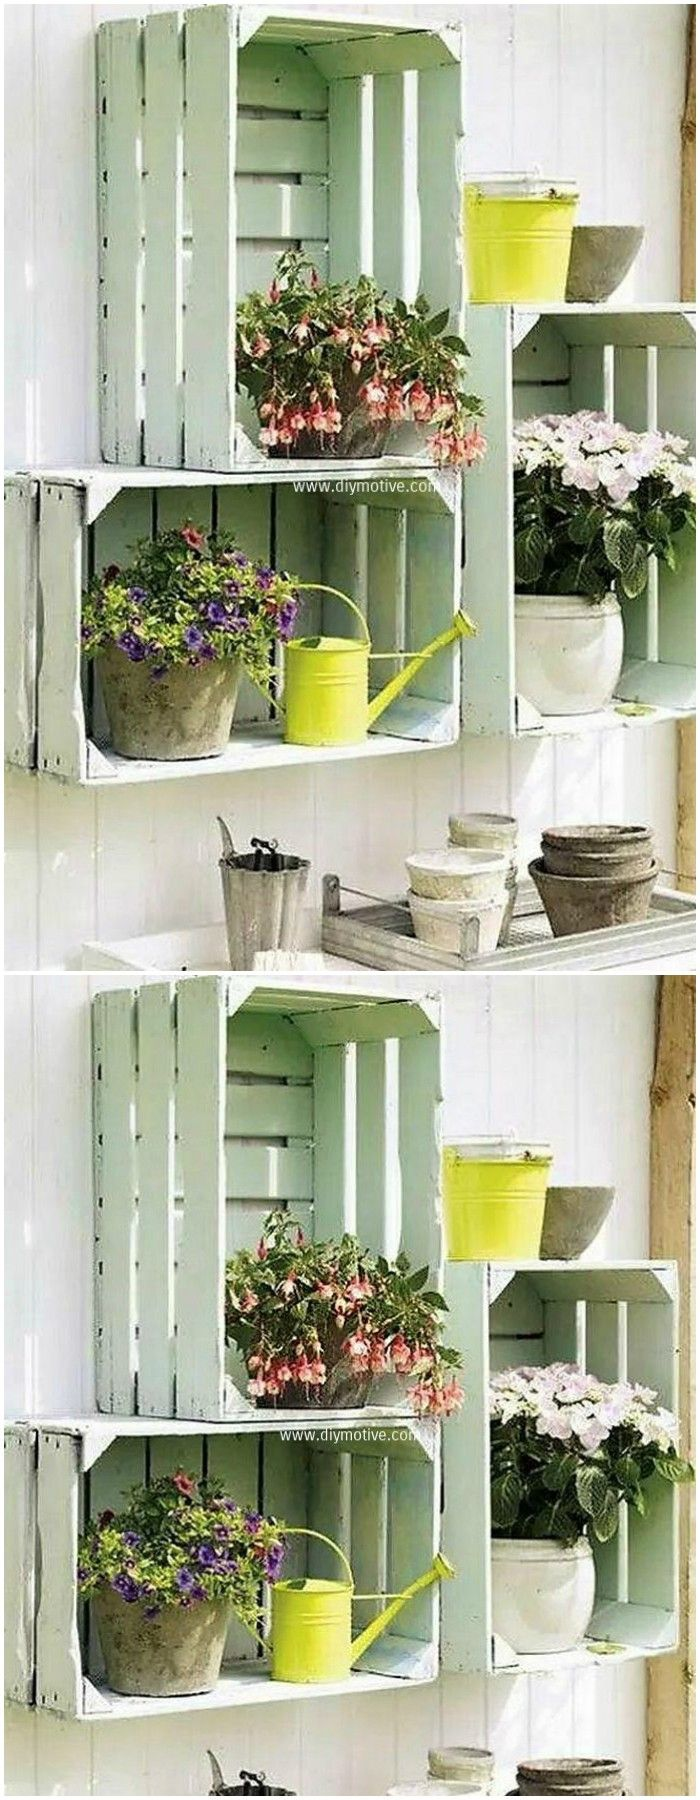 10 Amazing Wooden Pallet Fruit Crates Upcycling Ideas ... on Amazing Plant Stand Ideas  id=94557